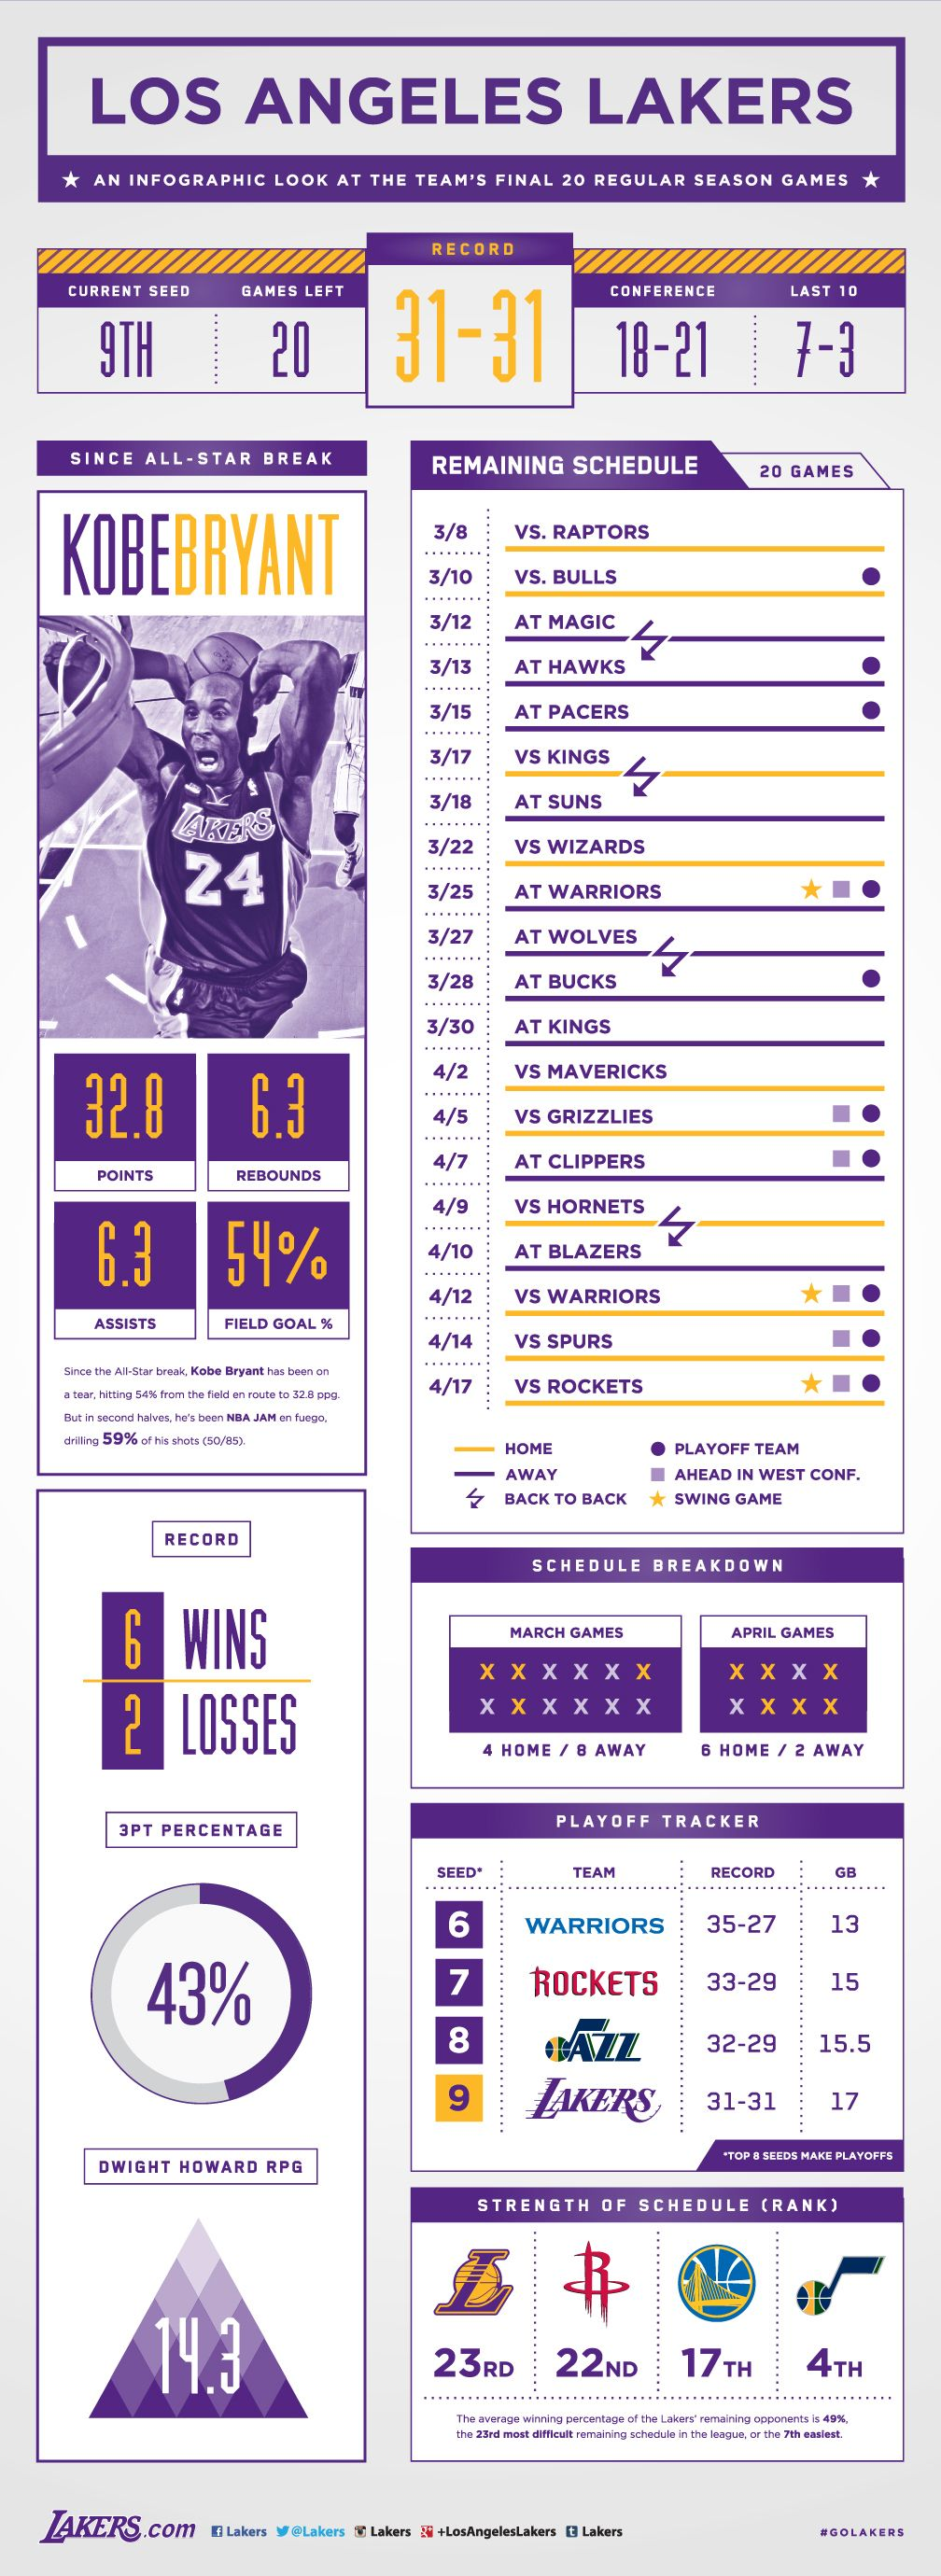 Final 20 Games Infographic Los Angeles Lakers Los Angeles Lakers Infographic Lakers